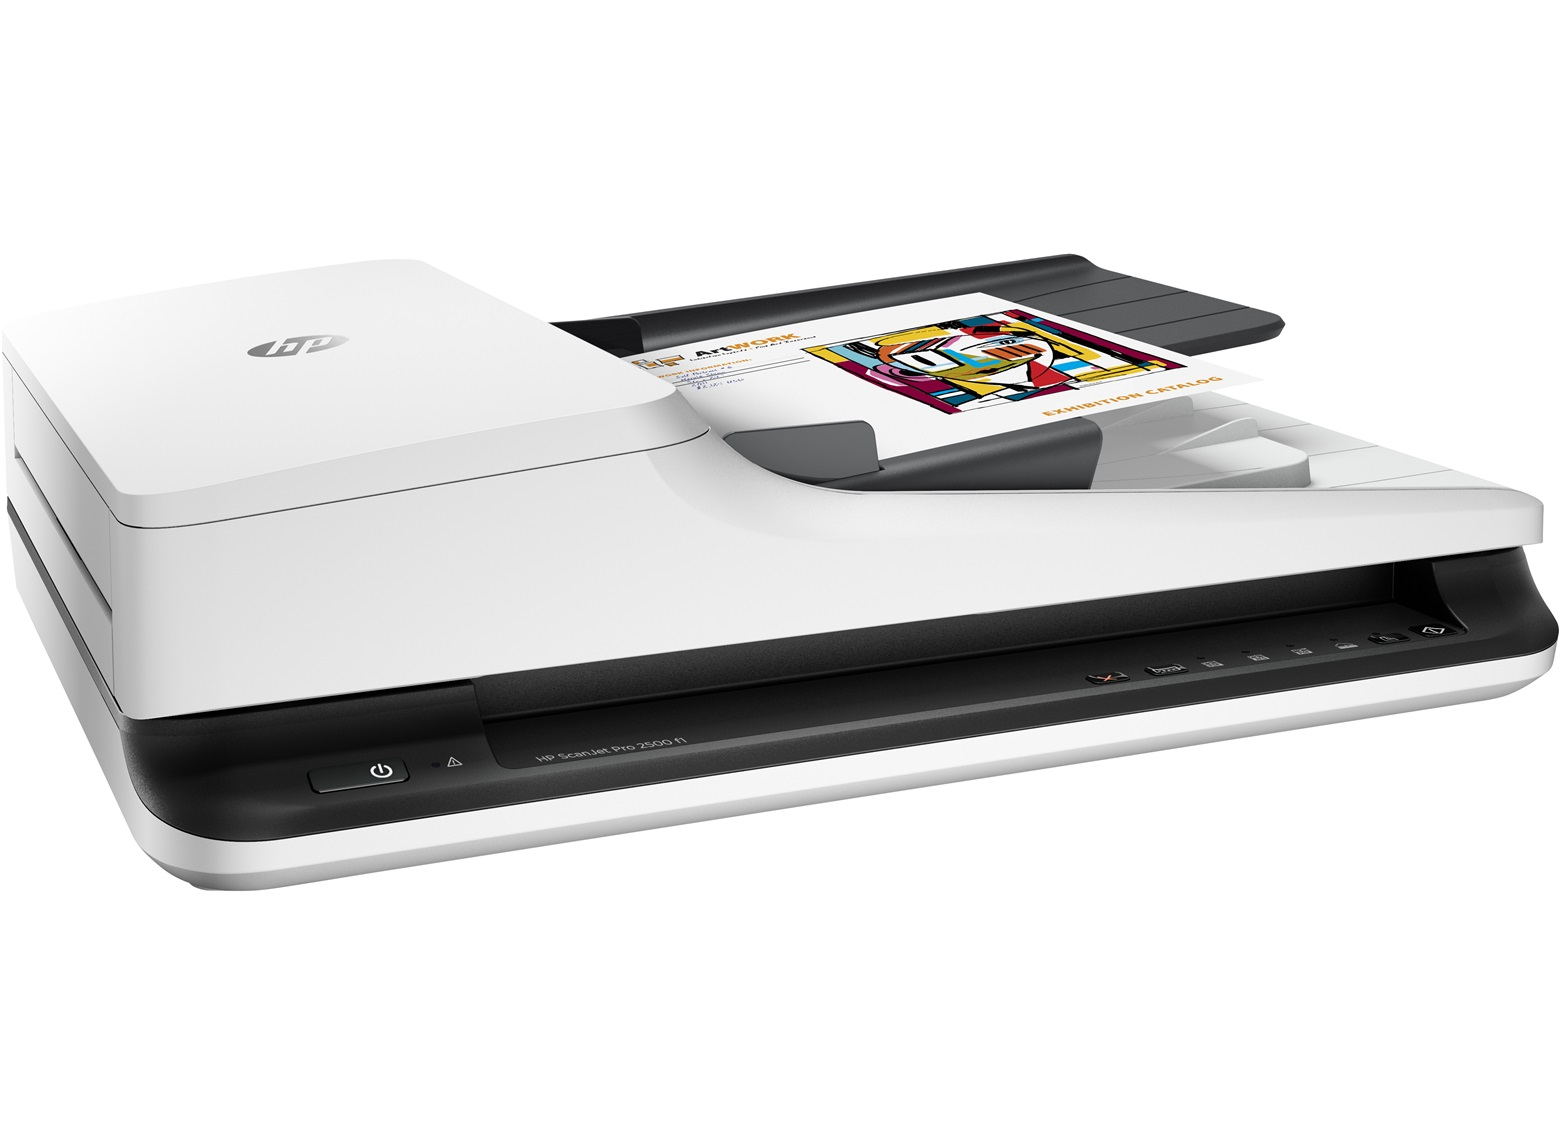 HP ScanJet Pro 2500 f1 Flatbed Scanner L2747A